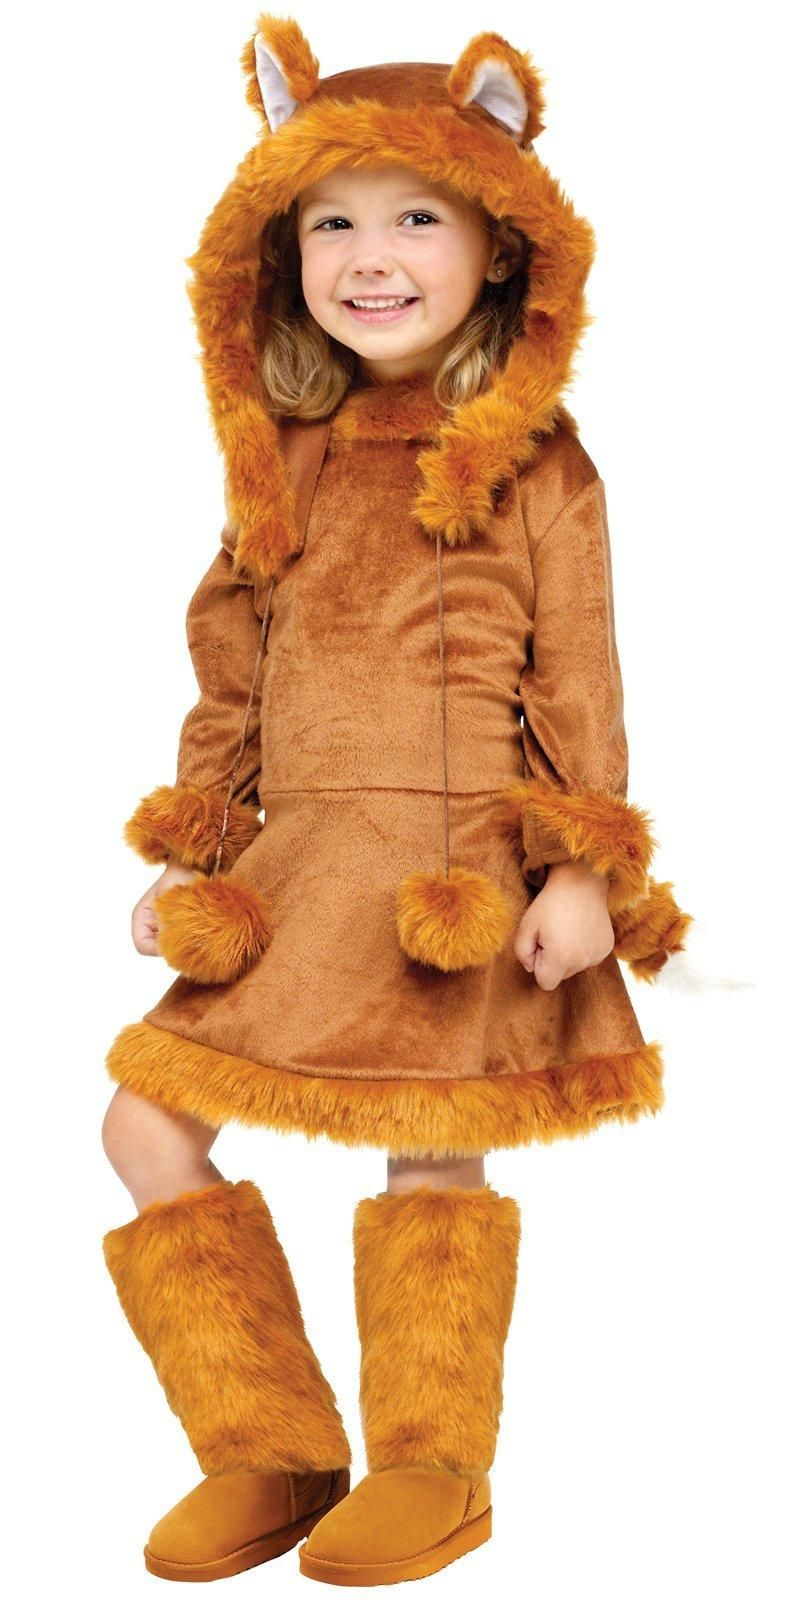 Fun World Costumes Baby Girlu0027s Sweet Fox Toddler Costume Includes Dress Plush Tail Boot Covers and Hood with Ears and Poms Toddler/Child Size  sc 1 st  Pinterest : girls wolf costumes  - Germanpascual.Com